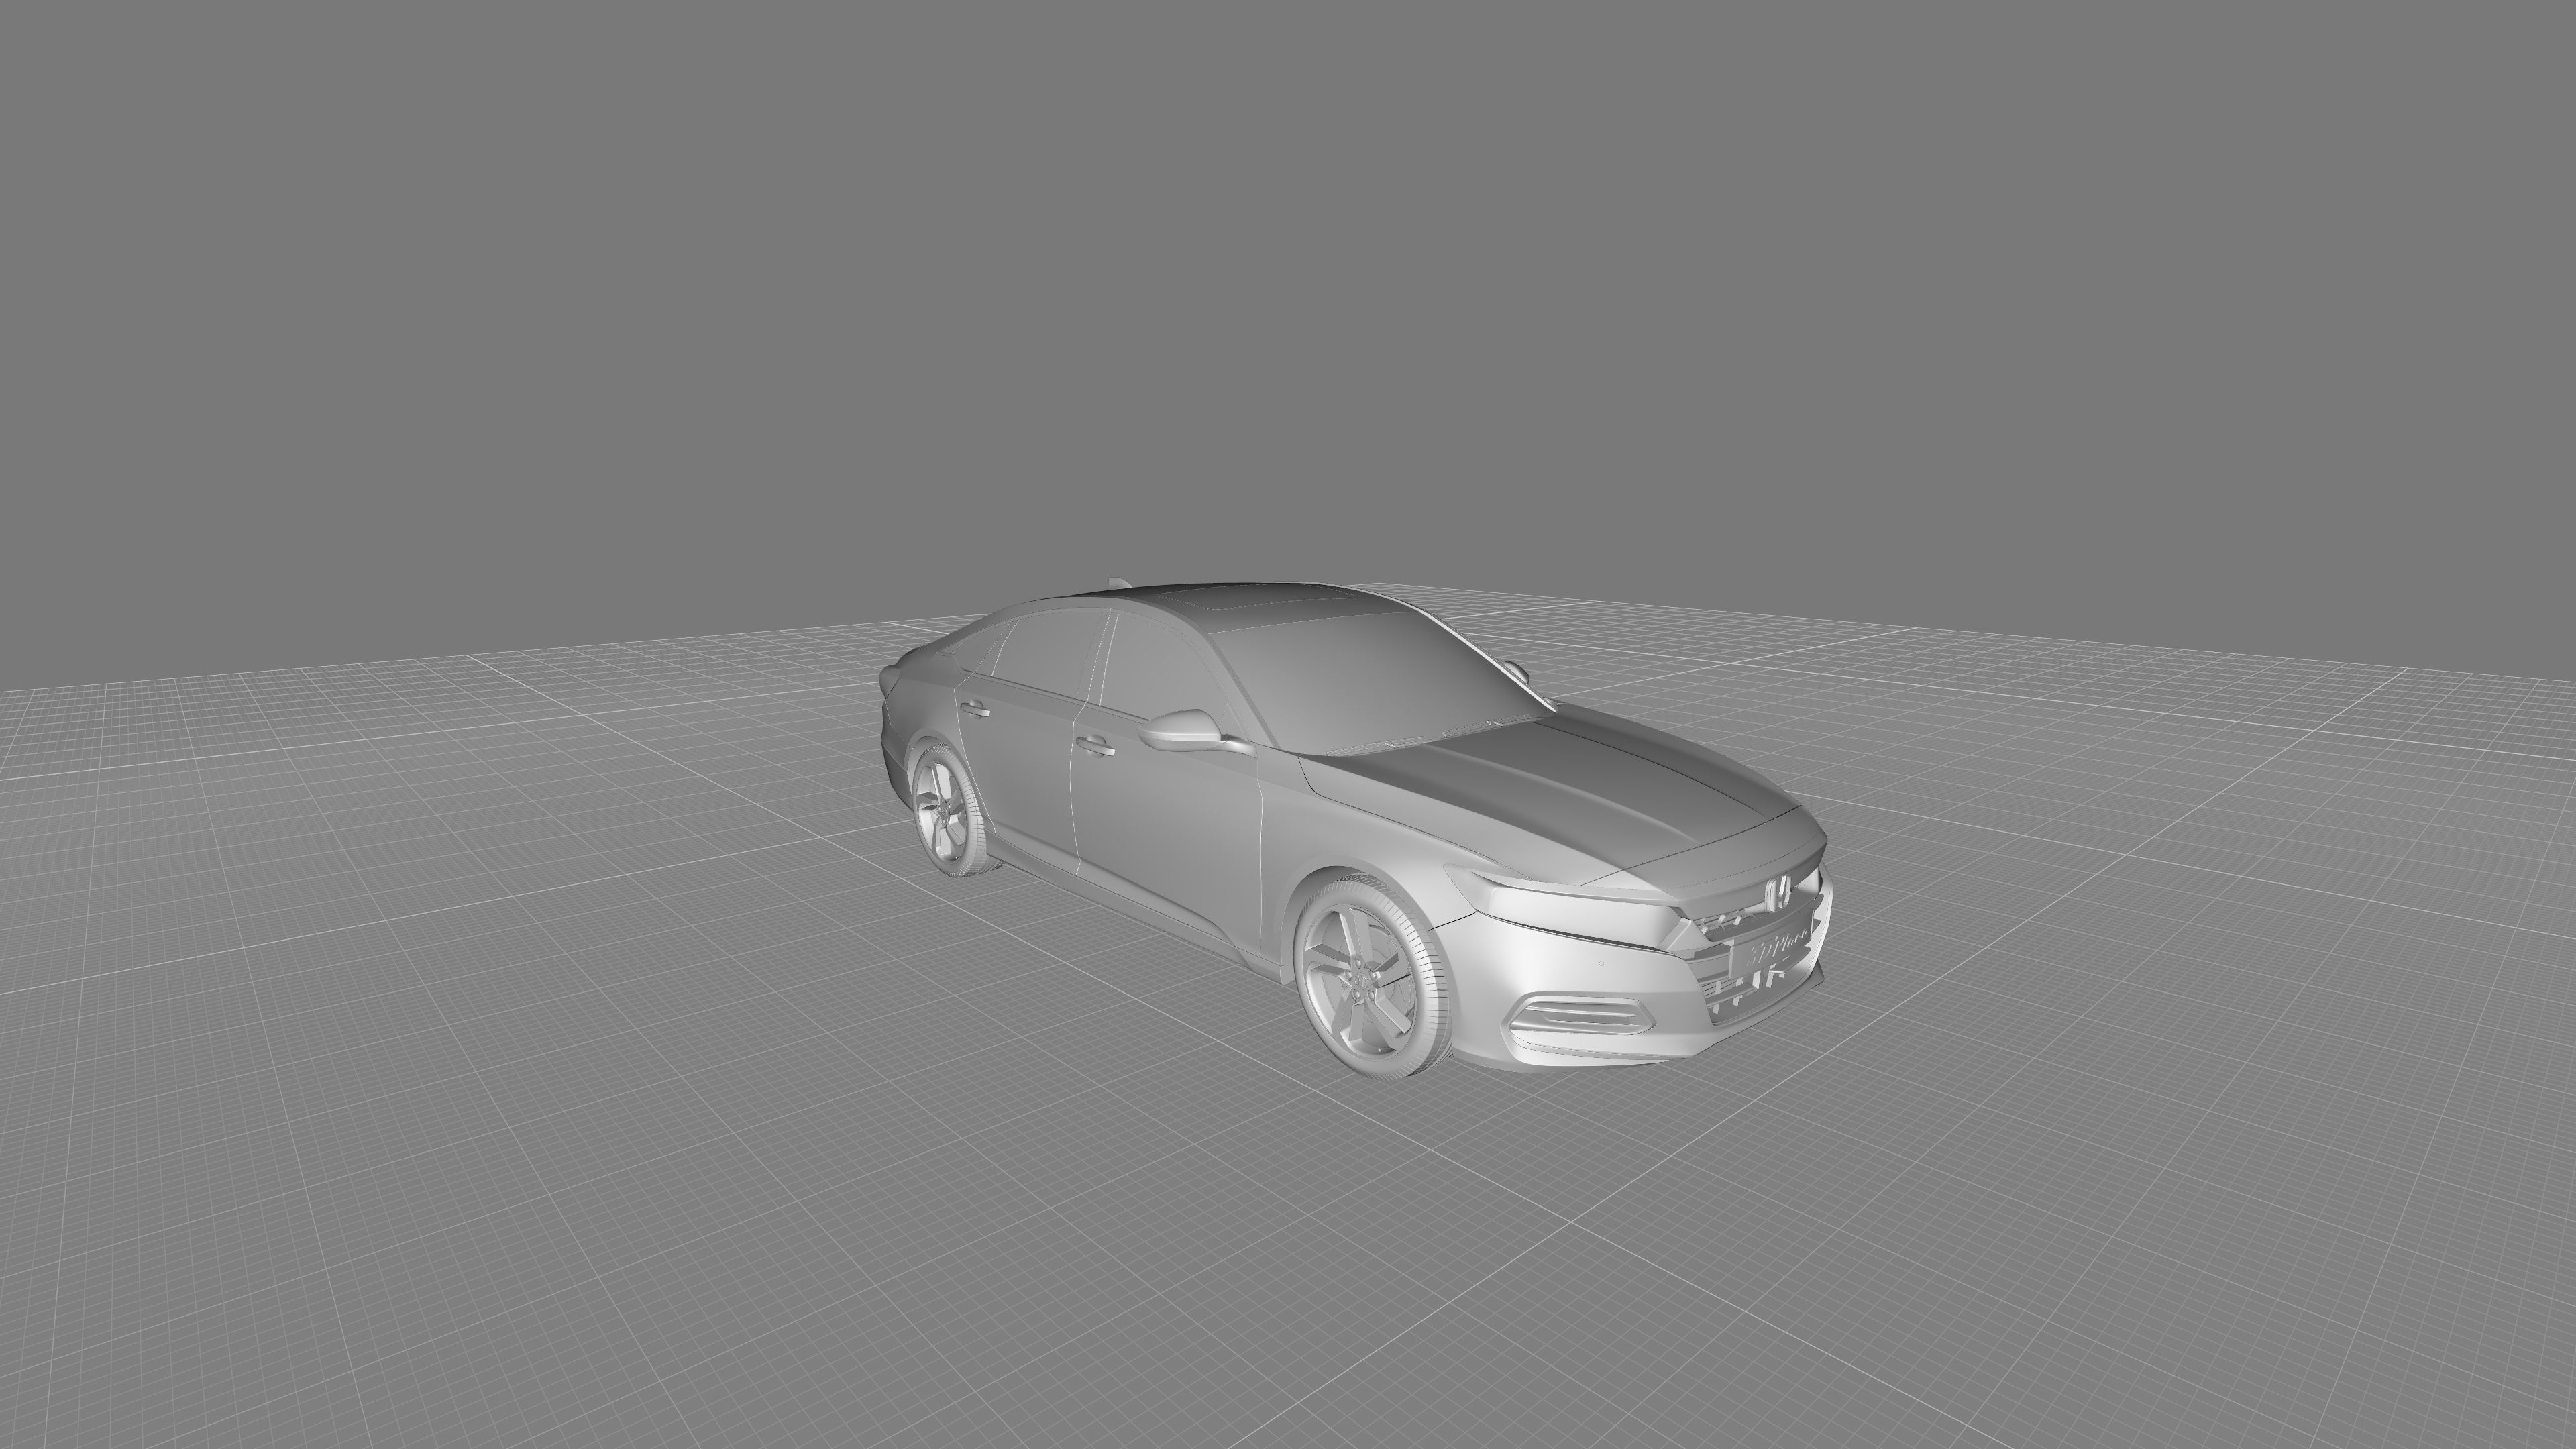 HONDA ACCORD SPORT SEDAN US 2018 3D PRINTING STL FILE